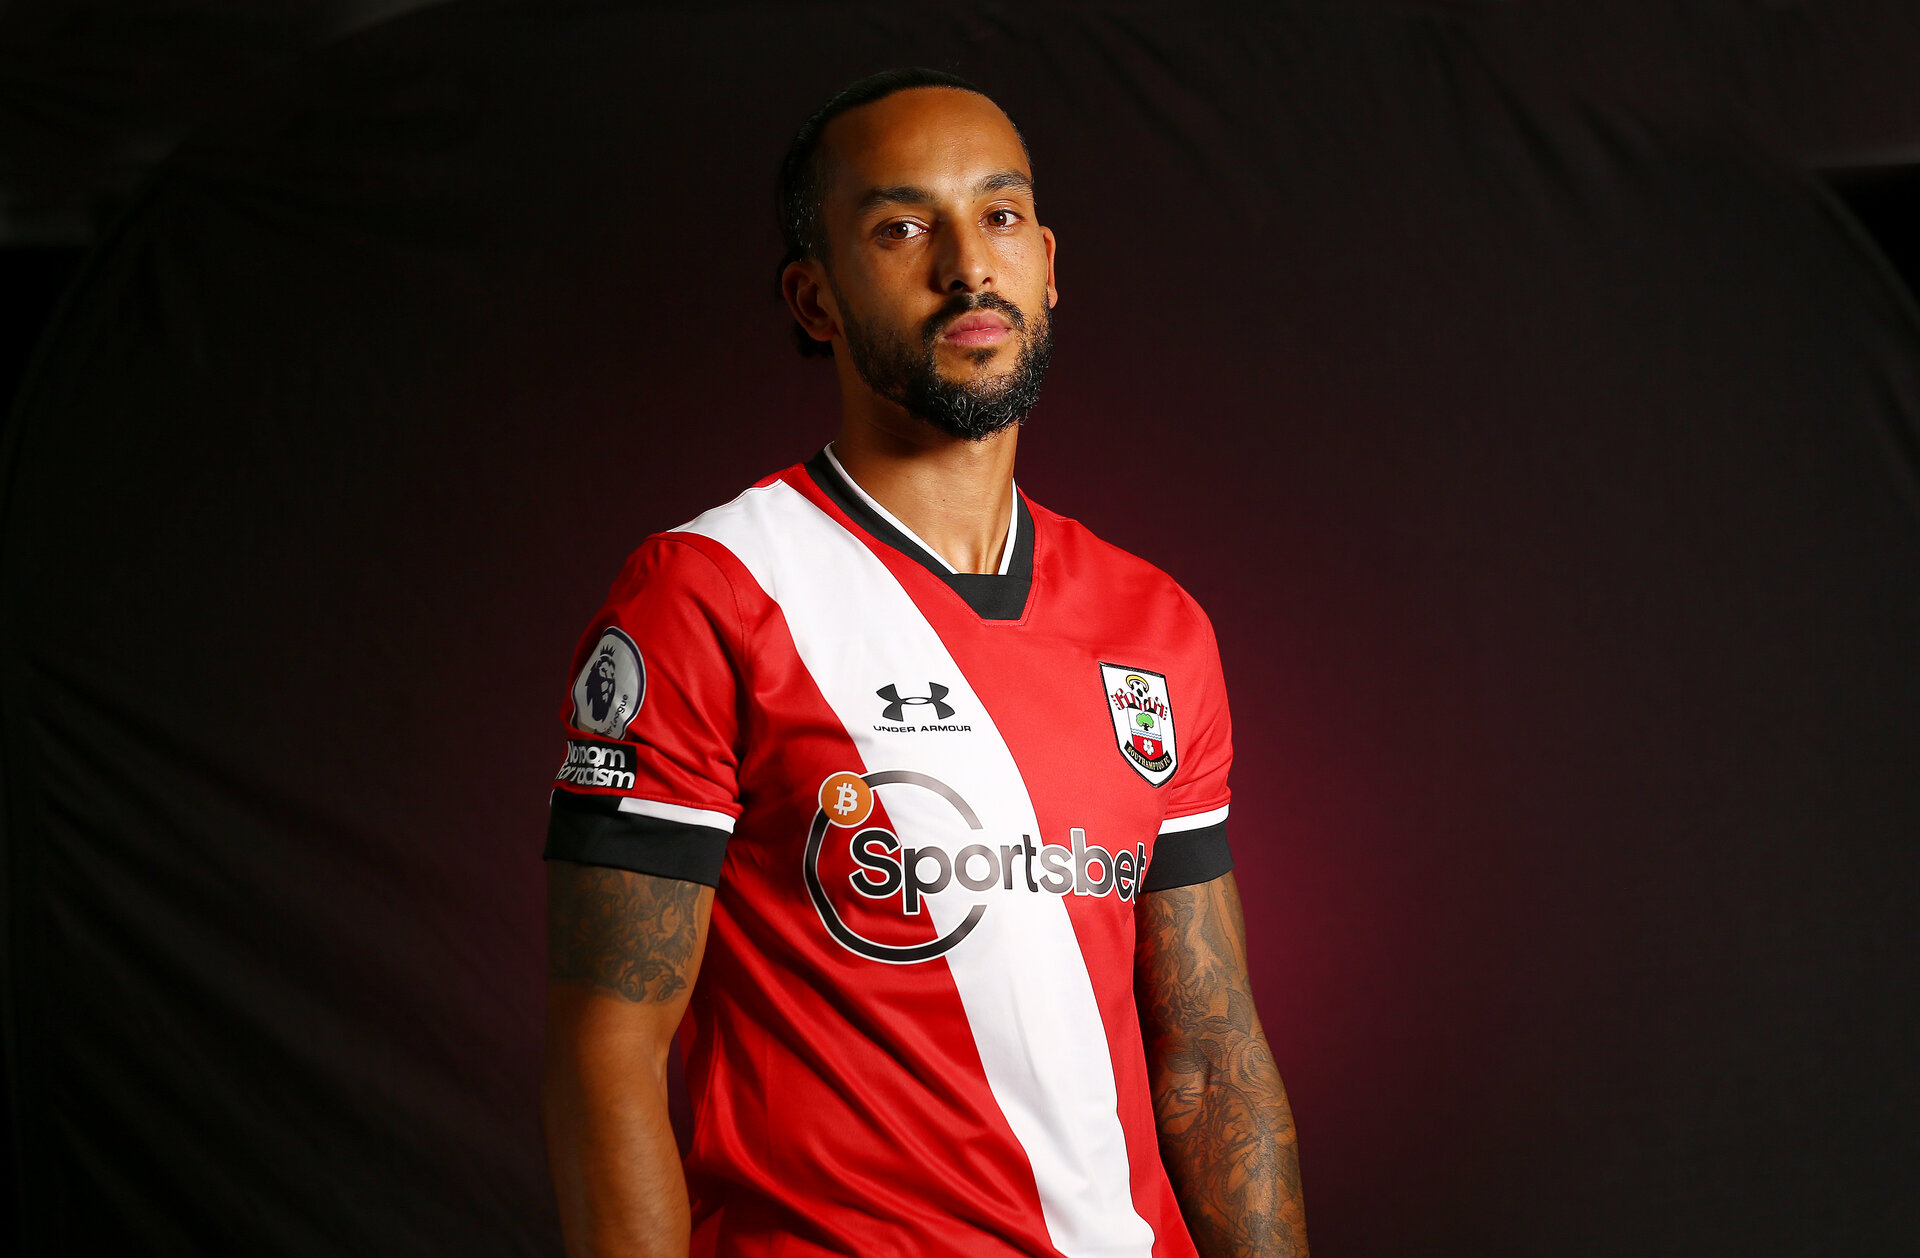 SOUTHAMPTON, ENGLAND - OCTOBER 05: Southampton FC sign Theo Walcott on a season-long loan deal from Everton, pictured on October 05, 2020 in Southampton, England. (Photo by Matt Watson/Southampton FC via Getty Images)